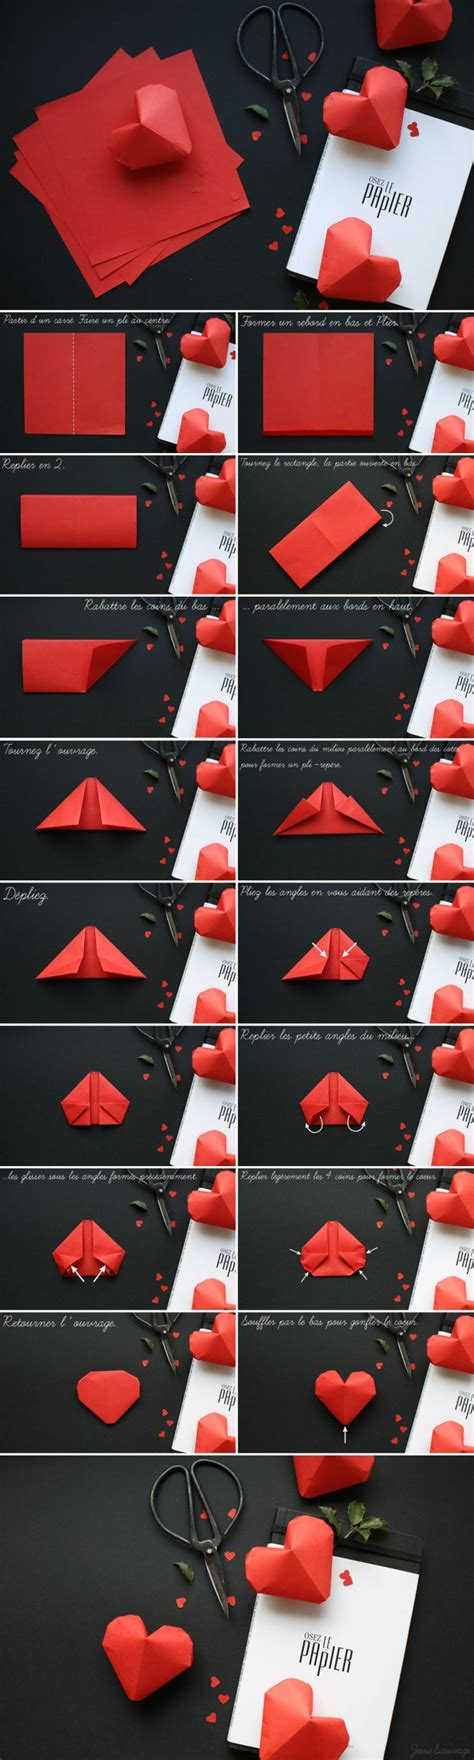 3d Hearts Origami - how to fold lovely origami hearts how to